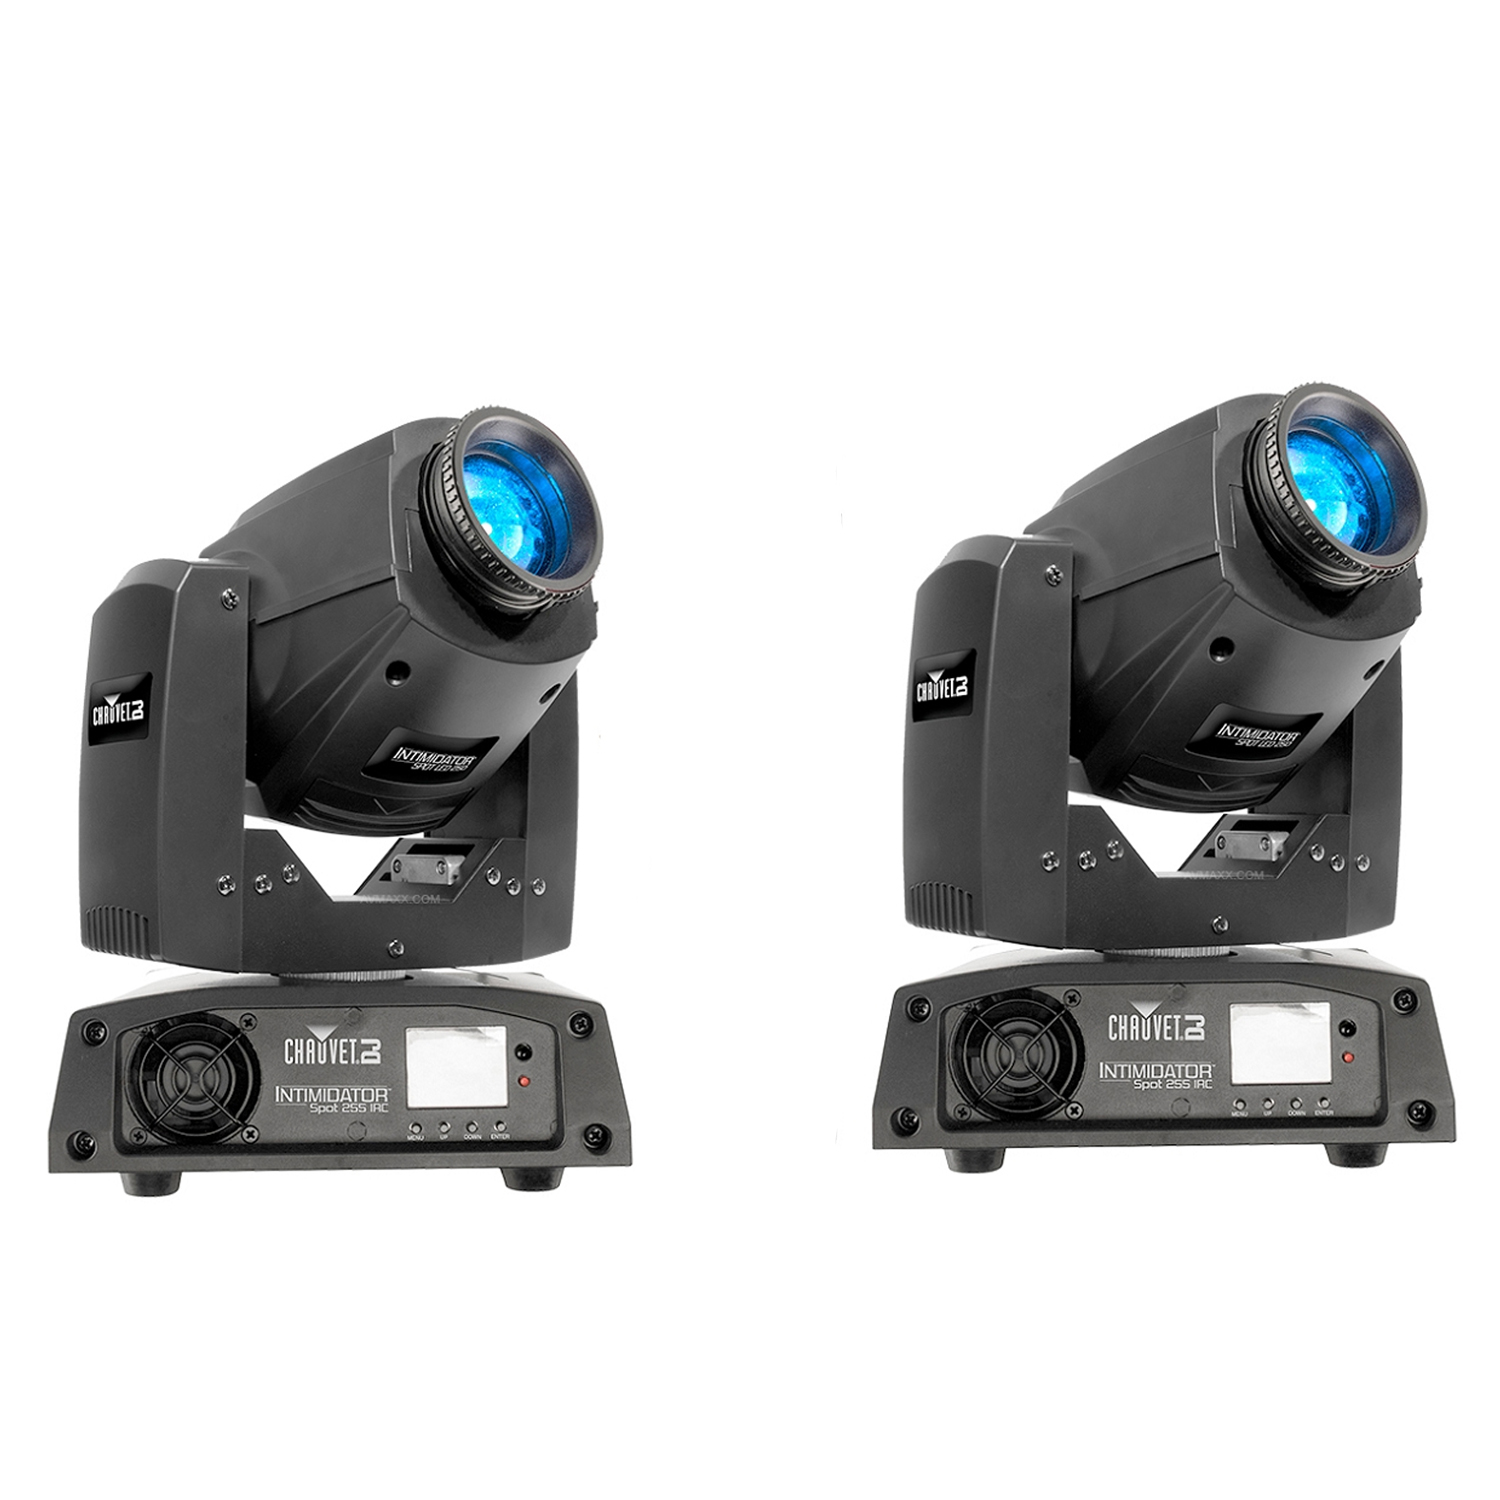 chauvet dj intimidator spot 255 irc totem pack guaranteed lowest price. Black Bedroom Furniture Sets. Home Design Ideas